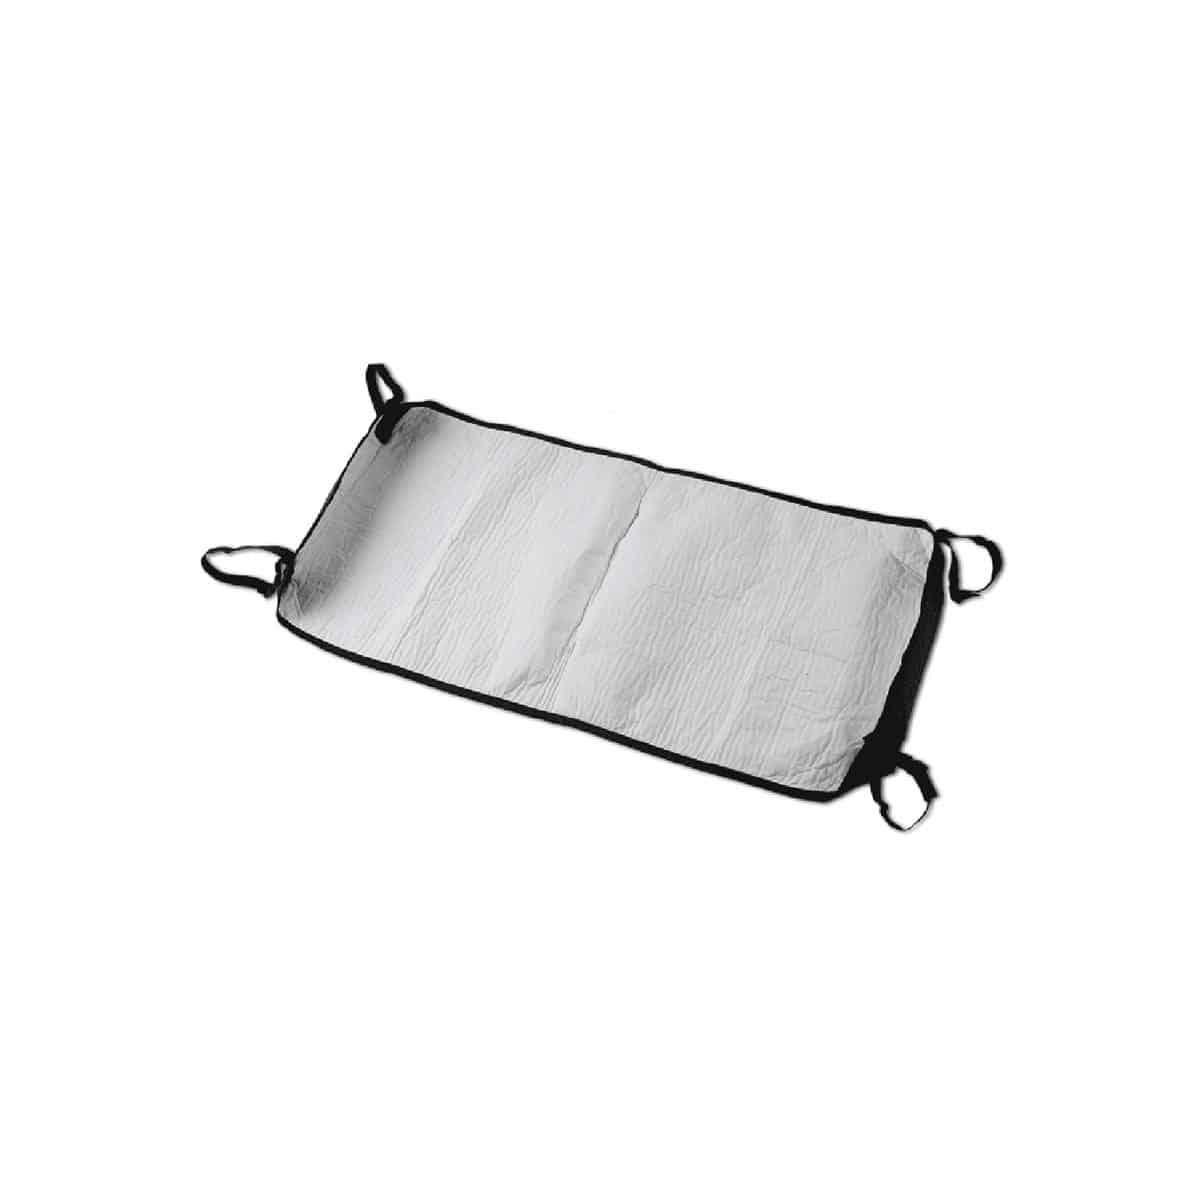 apls surgery soaker catch pad